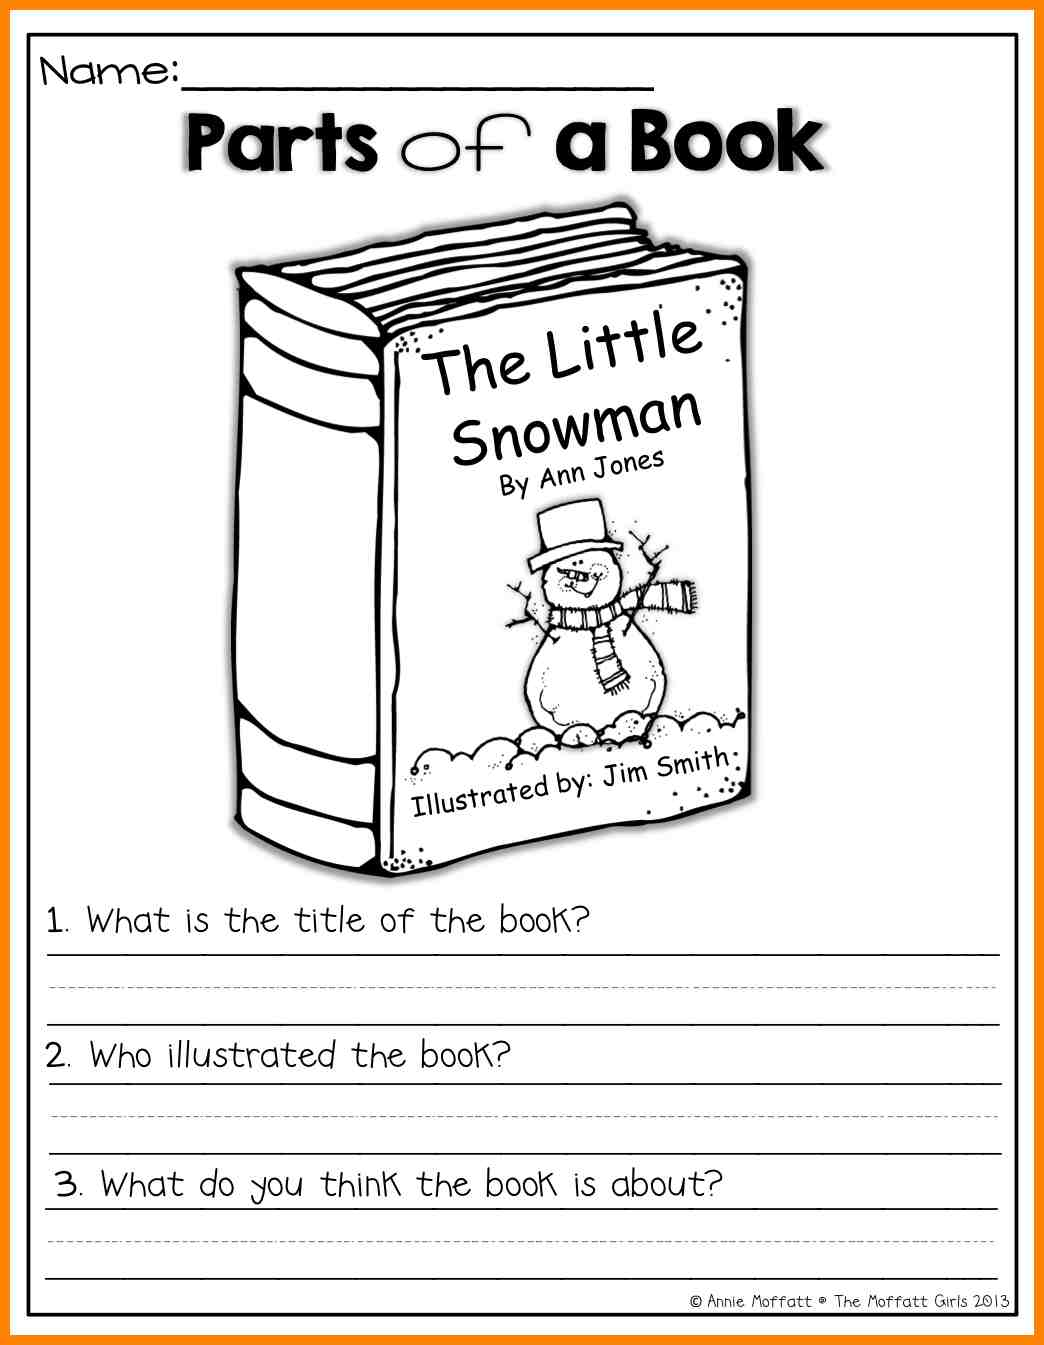 Parts Of A Book Worksheet Worksheets For All